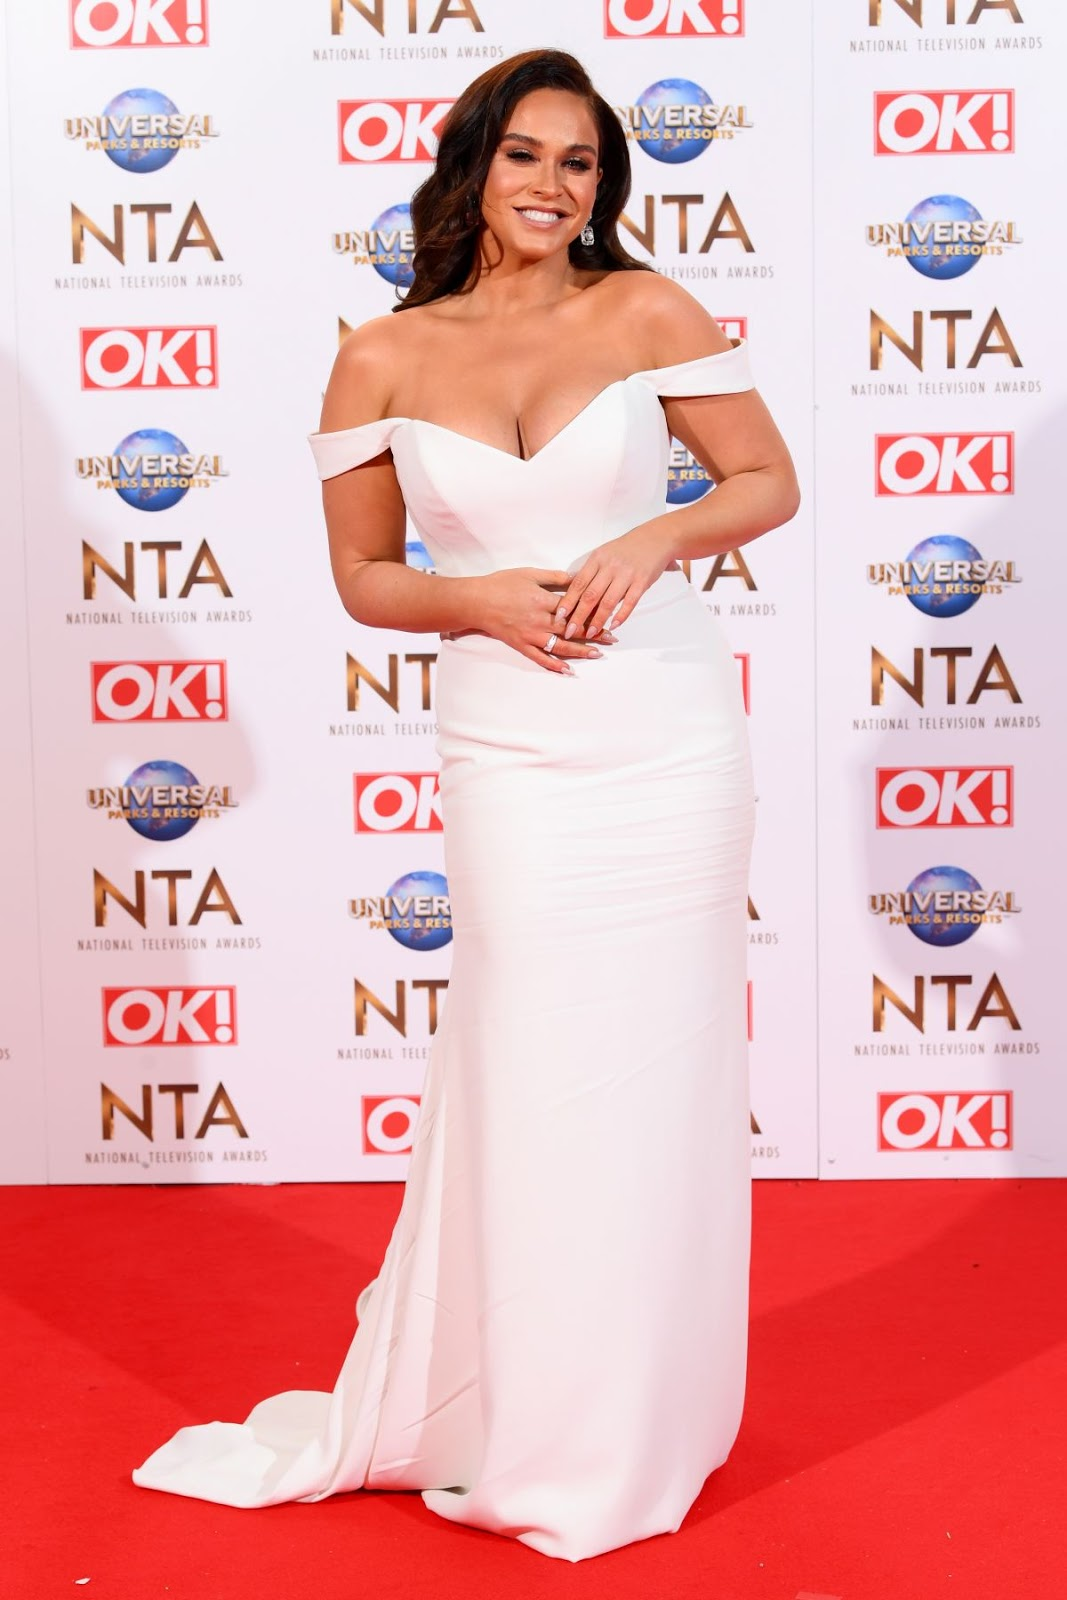 Vicky Pattison Hot Photos in White Outfit